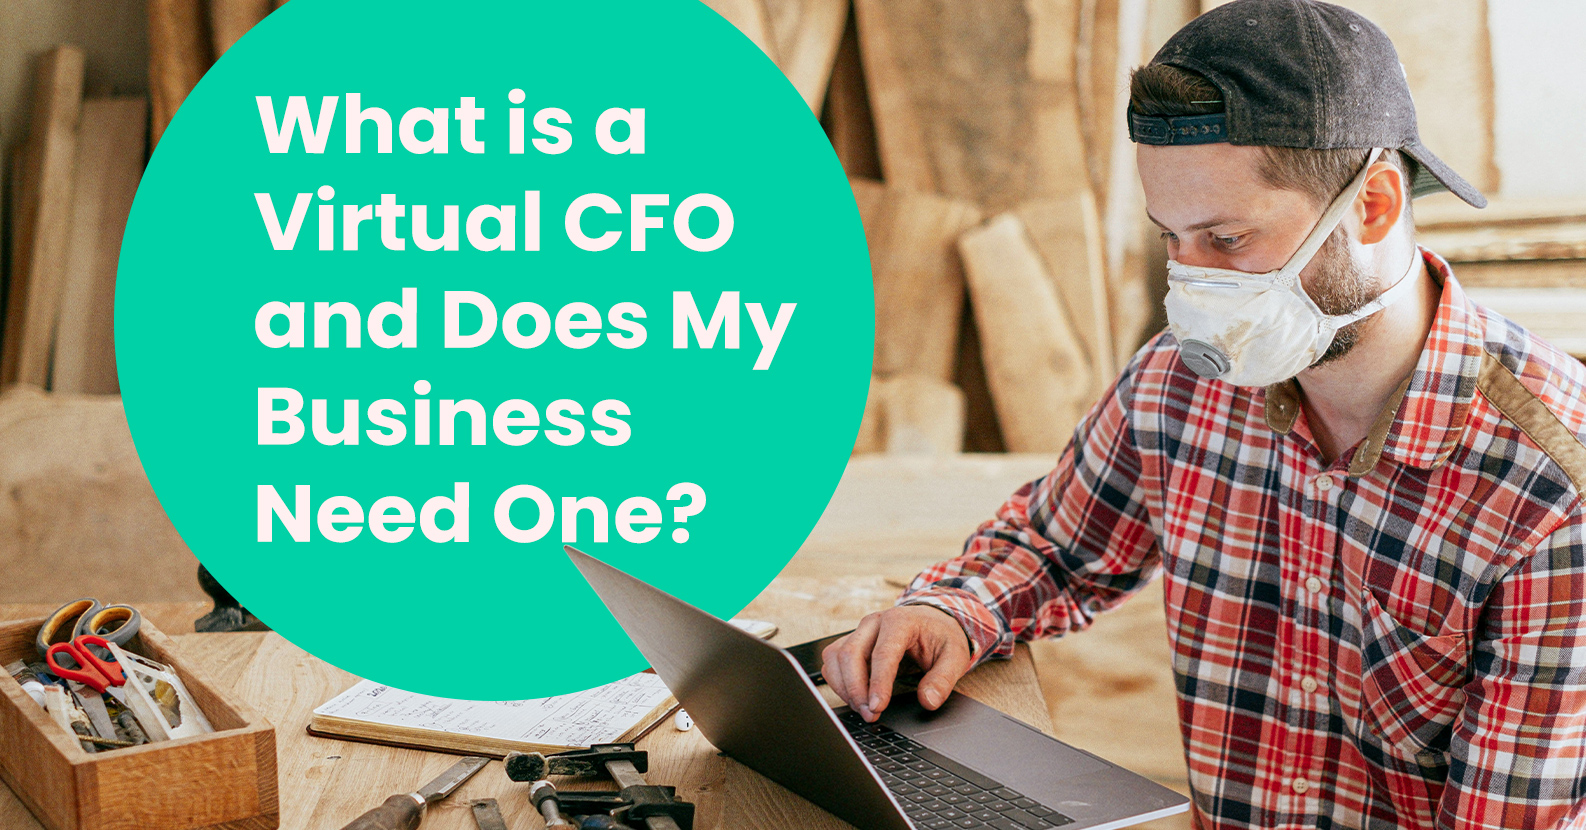 What Is A Virtual CFO And Does My Business Need One?